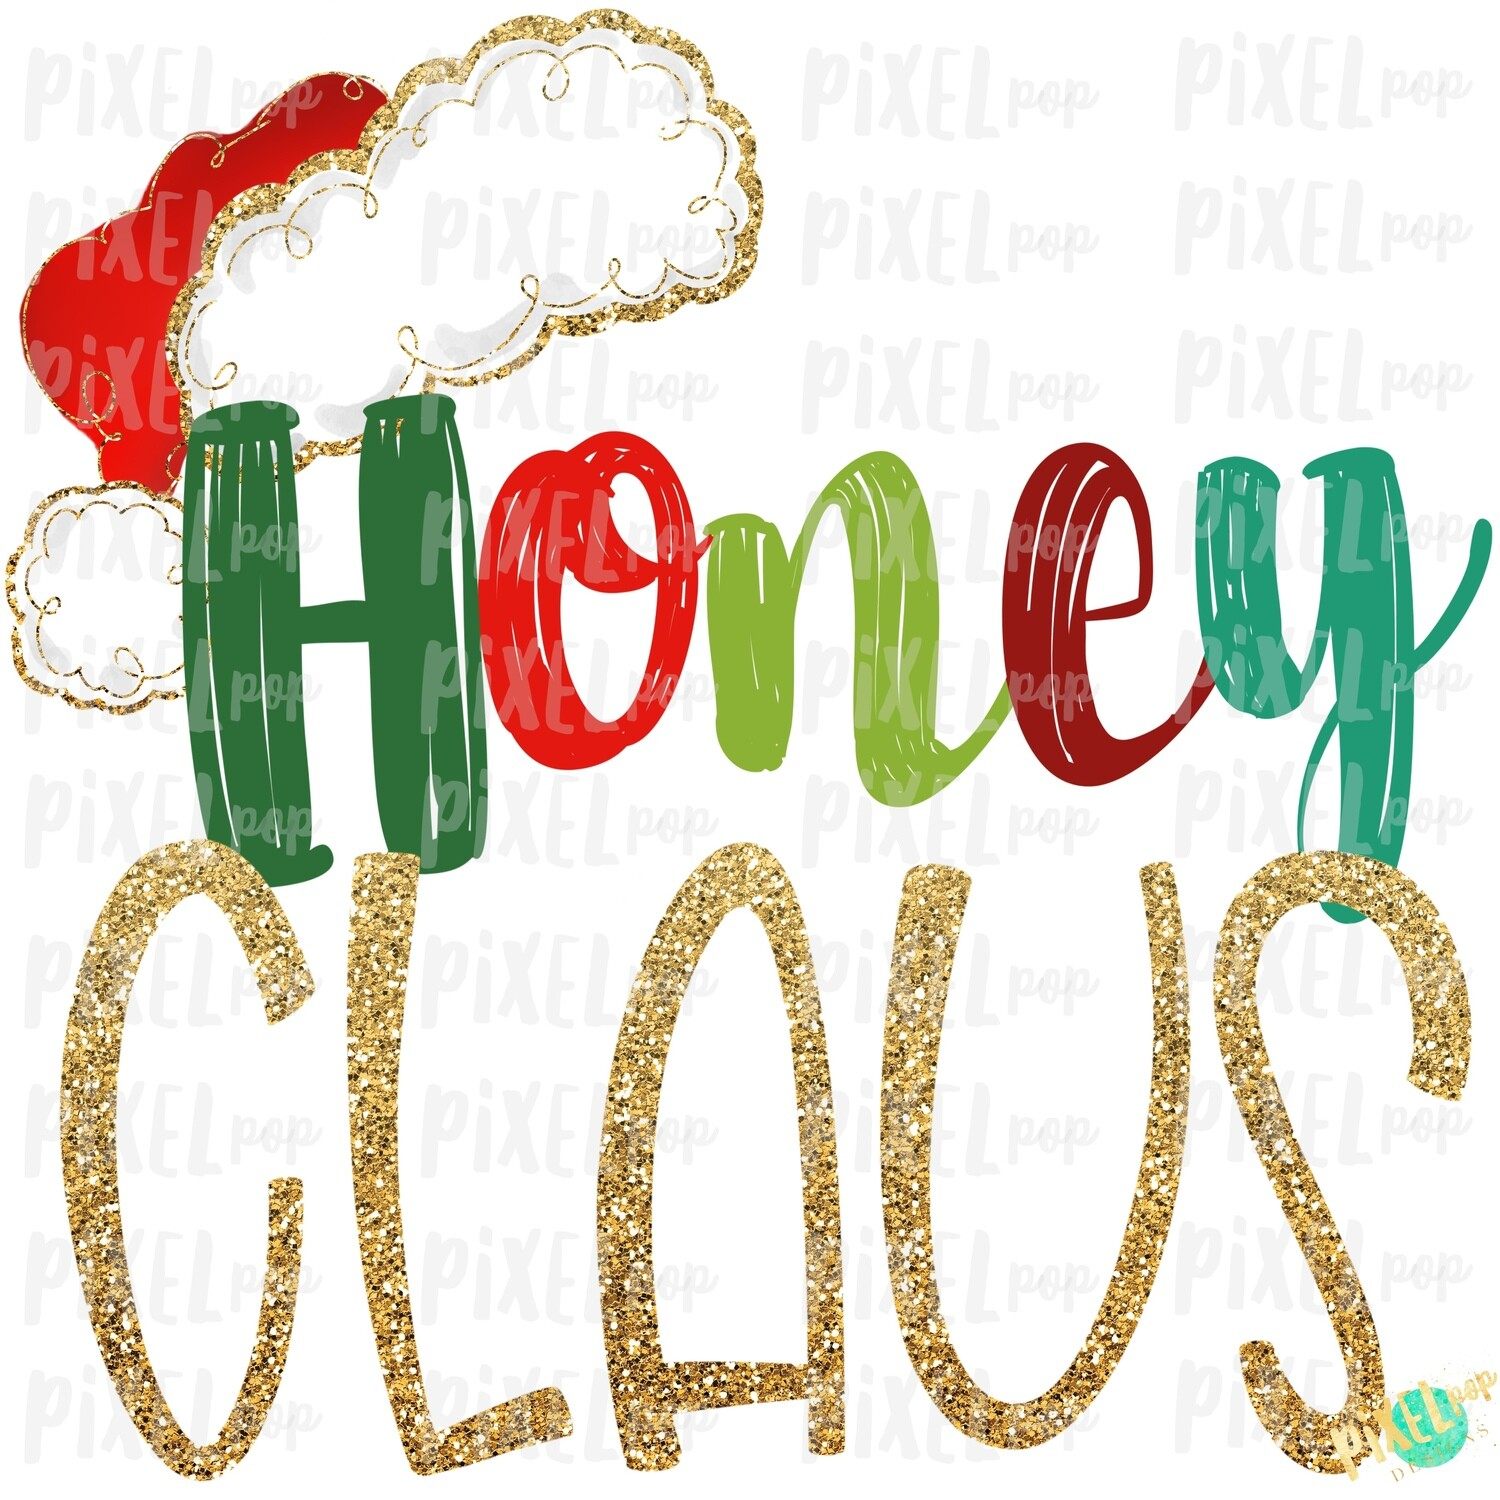 Honey Claus Santa Hat Digital Watercolor Sublimation PNG Art | Drawn Design | Sublimation PNG | Digital Download | Printable Artwork | Art